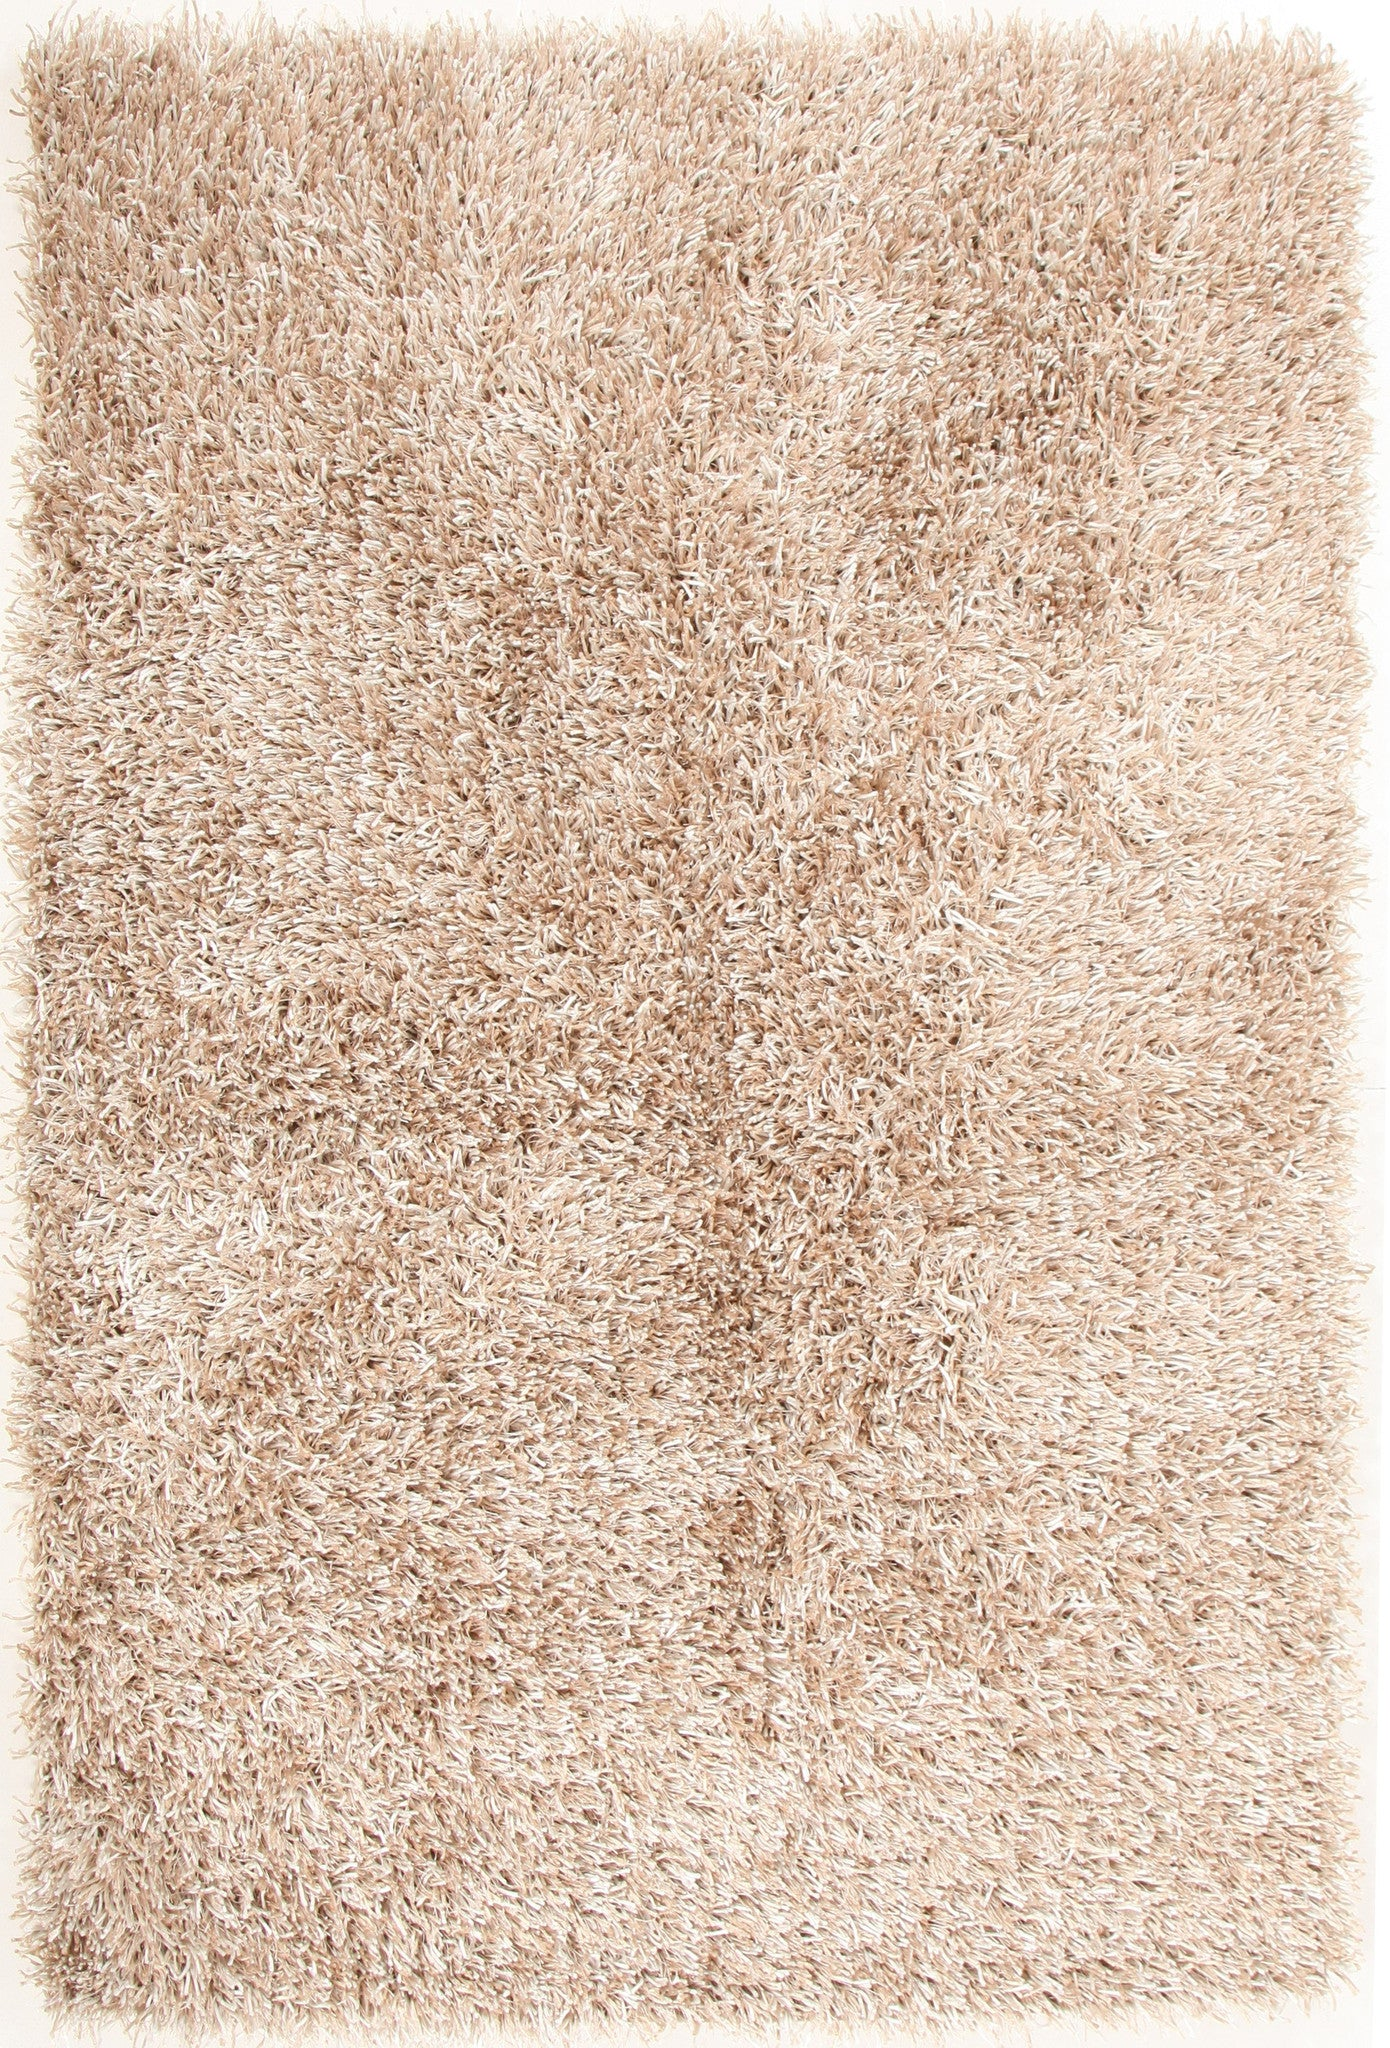 Orlando Shaggy Rug - Cream